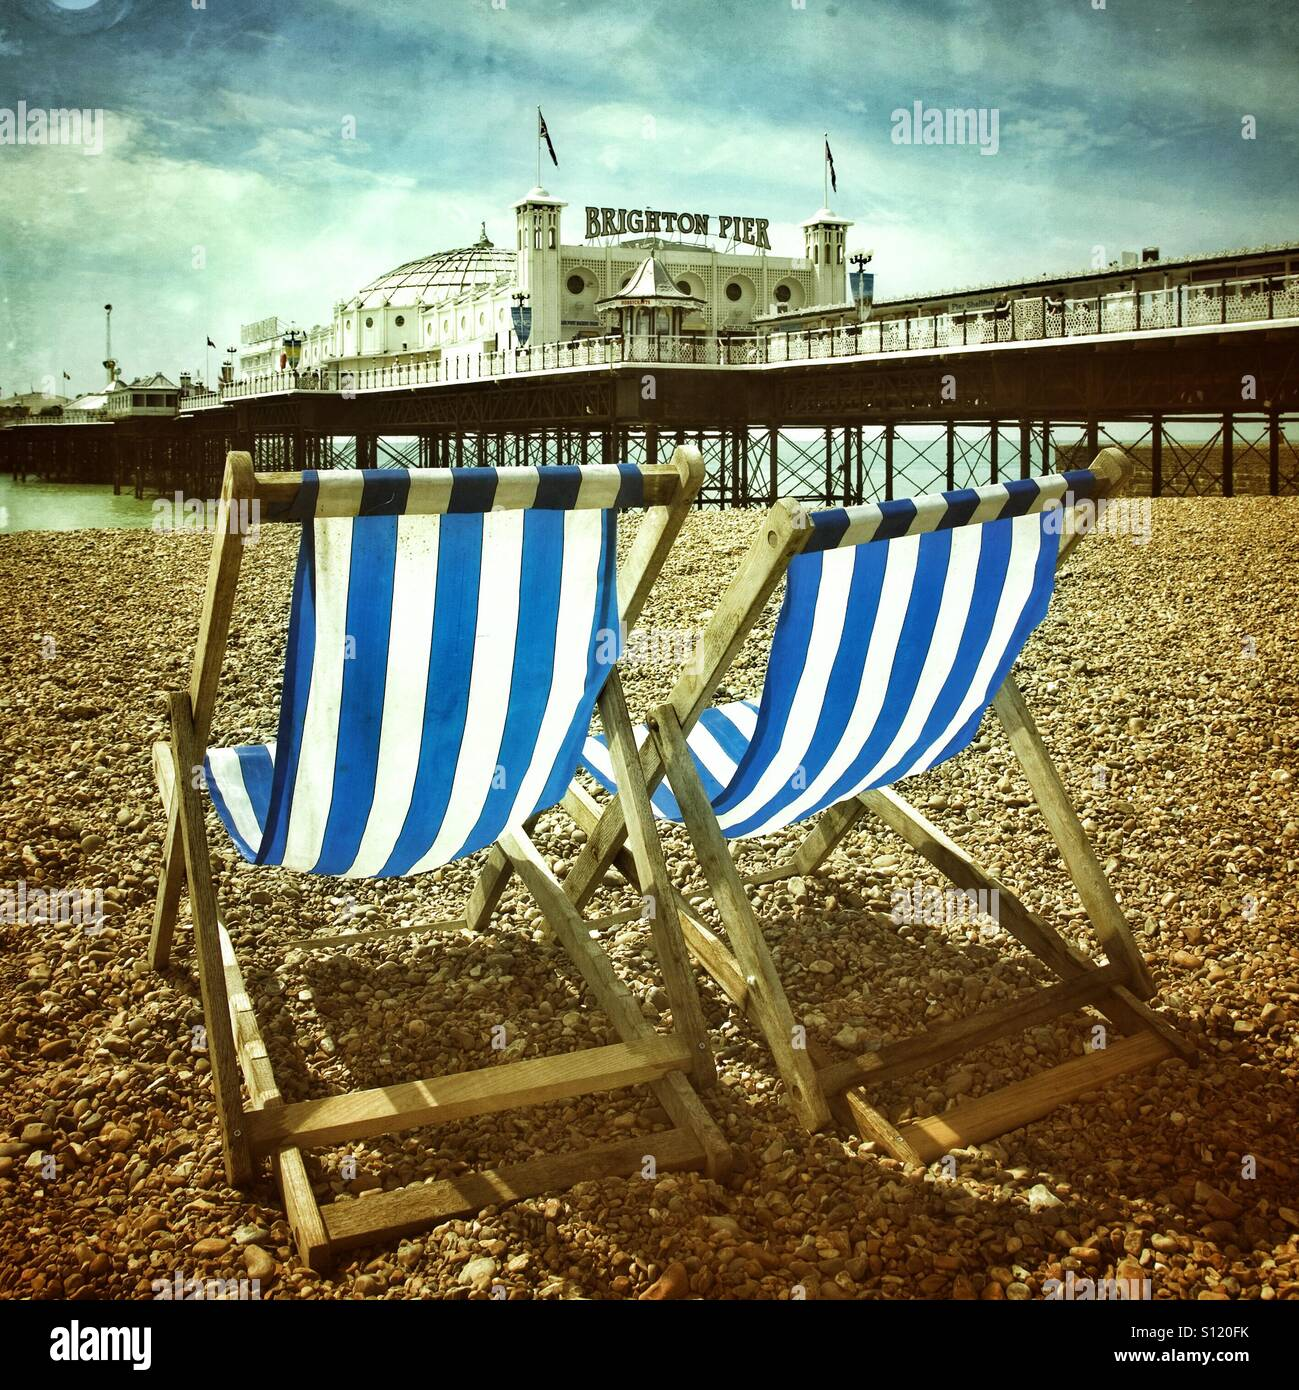 Blue and white striped deckchairs on brighton beach - Stock Image